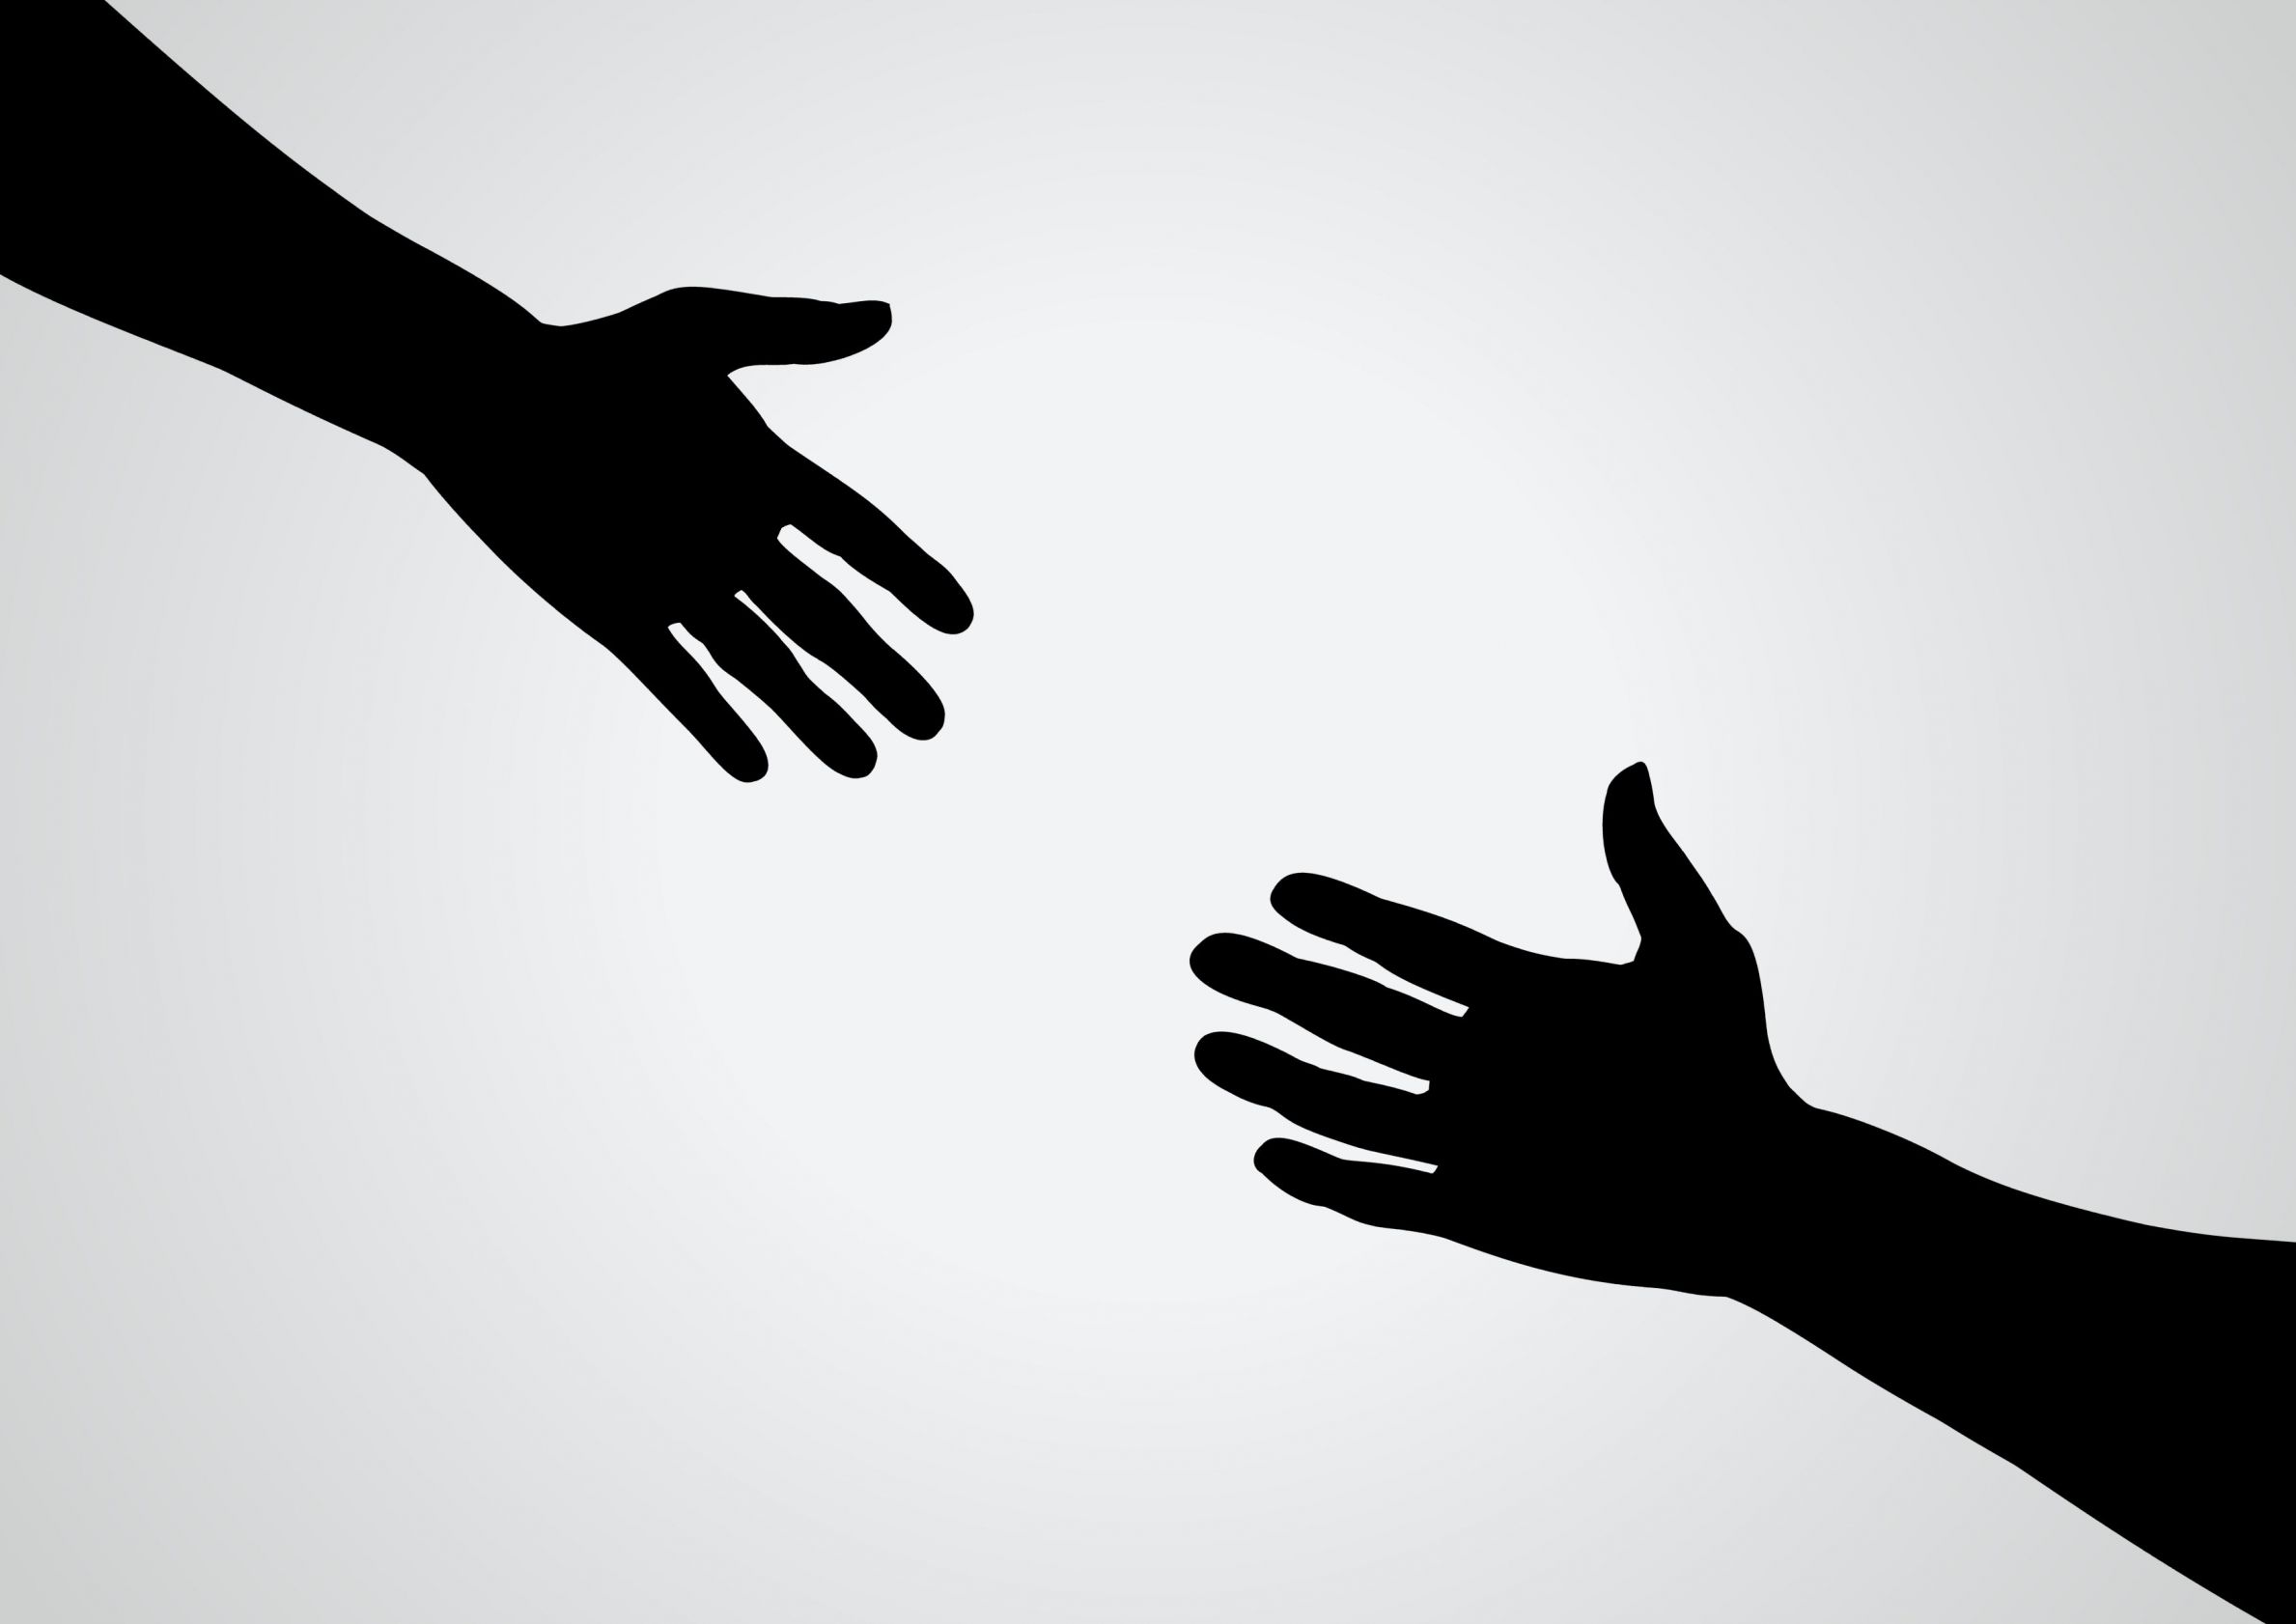 helping-hands-black-and-white-clipart-clipart-kid ...